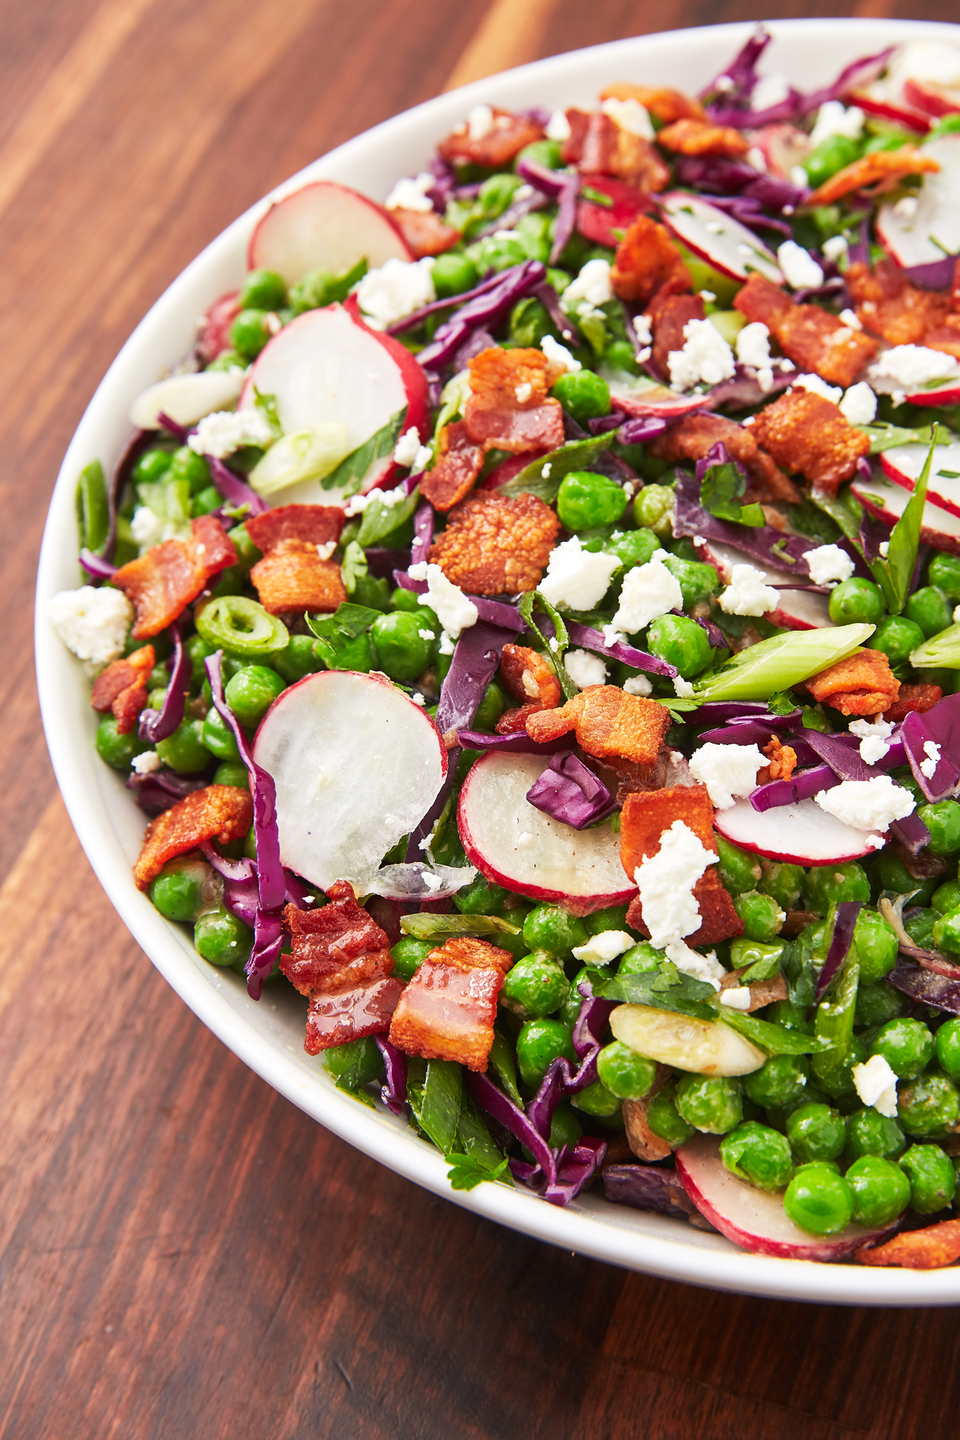 """<p>This side dish will liven up any weeknight dinner.</p><p>Get the recipe from <a href=""""https://www.delish.com/cooking/recipe-ideas/a27243978/pea-salad-recipe/"""" rel=""""nofollow noopener"""" target=""""_blank"""" data-ylk=""""slk:Delish"""" class=""""link rapid-noclick-resp"""">Delish</a>. </p>"""